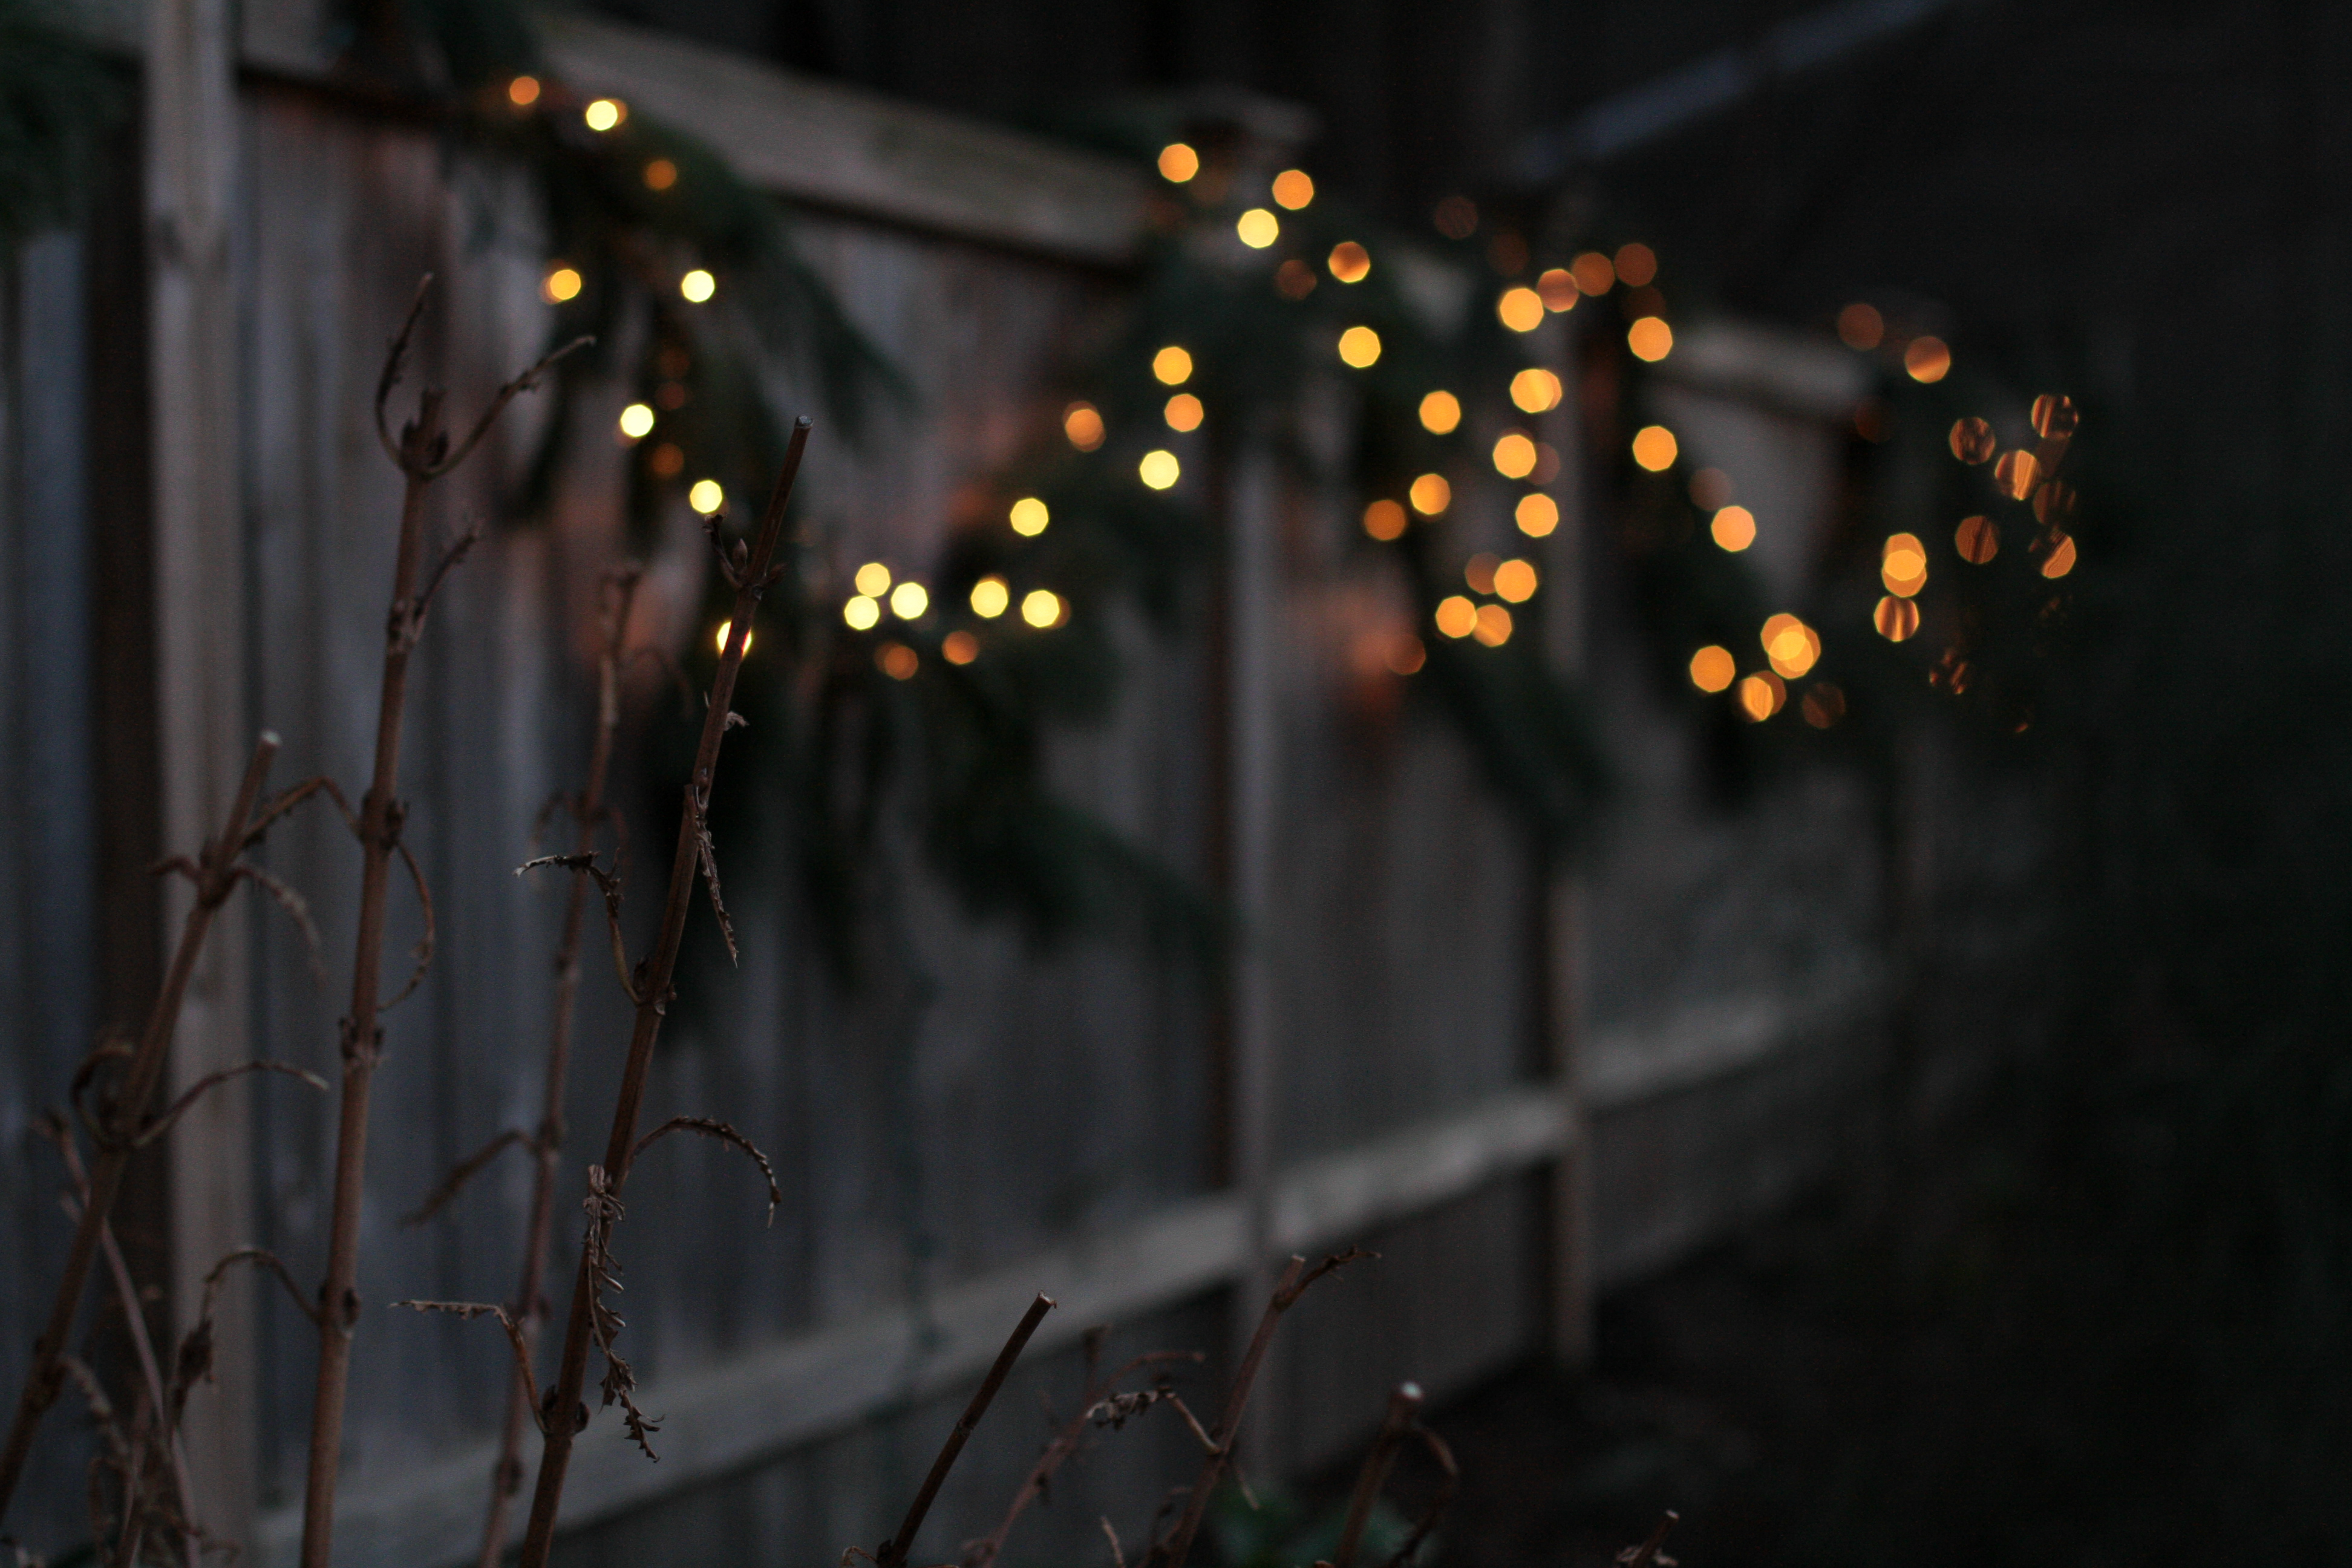 In the dark, swoops of evergreen garland with small white lights decorate an outdoor fence.